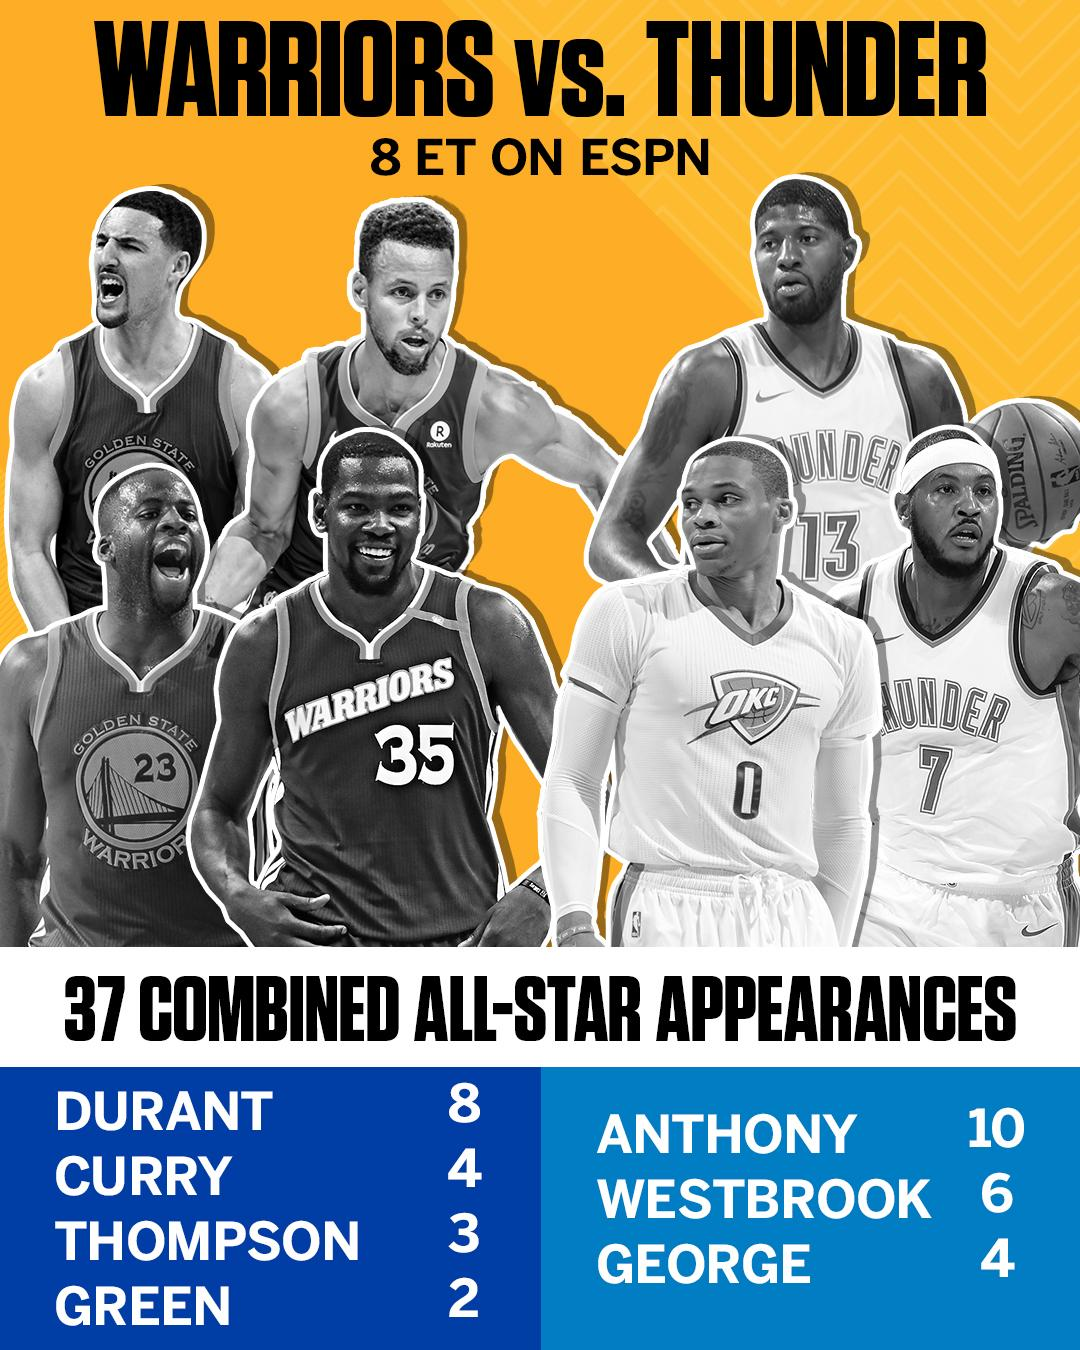 There will be a LOT of star power in OKC tonight. https://t.co/y0tq8xW6Jl